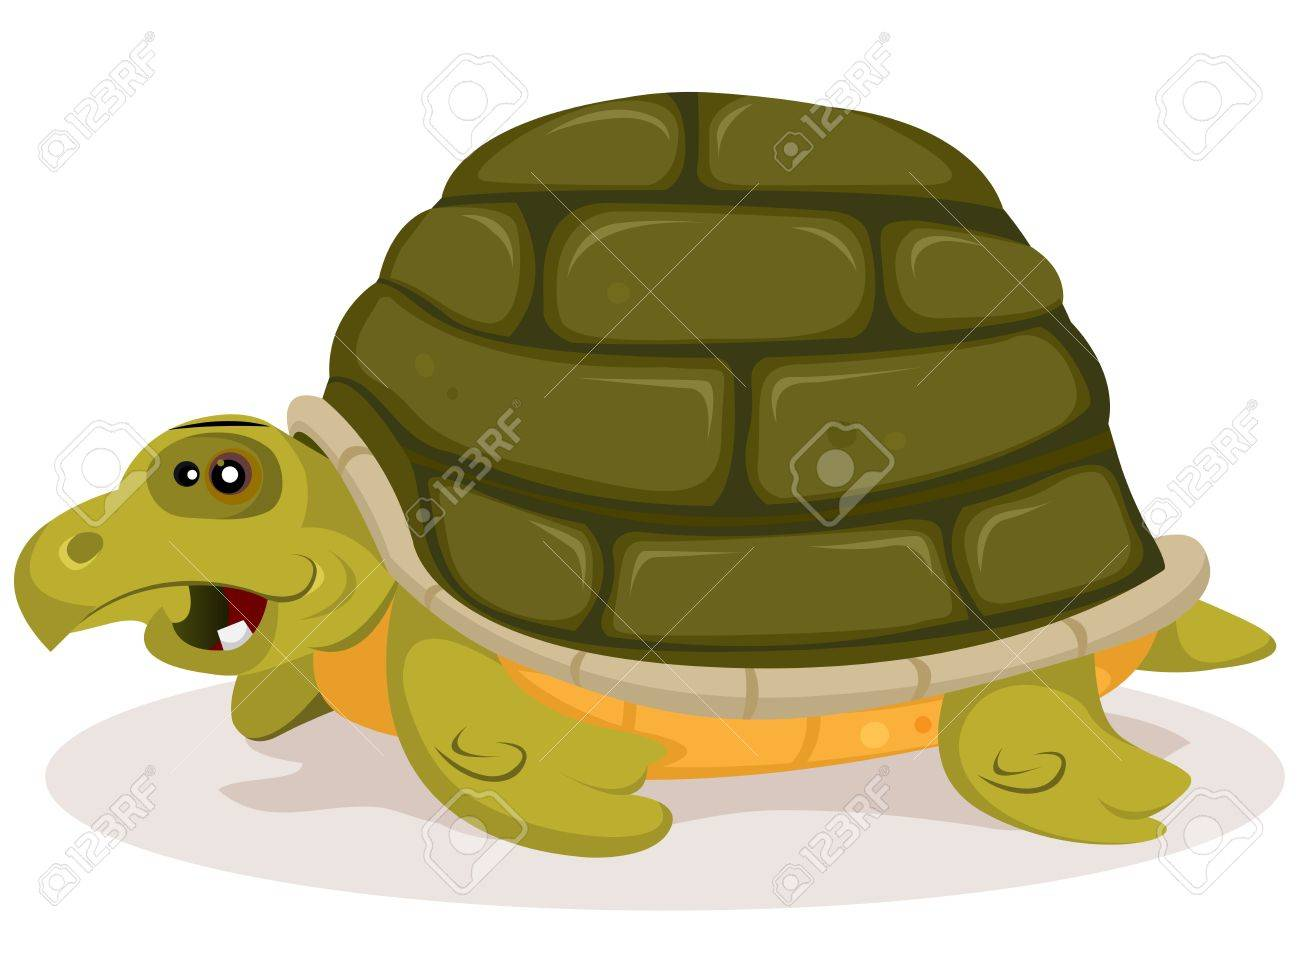 Illustration Of A Funny Happy And Cute Cartoon Green Tortoise